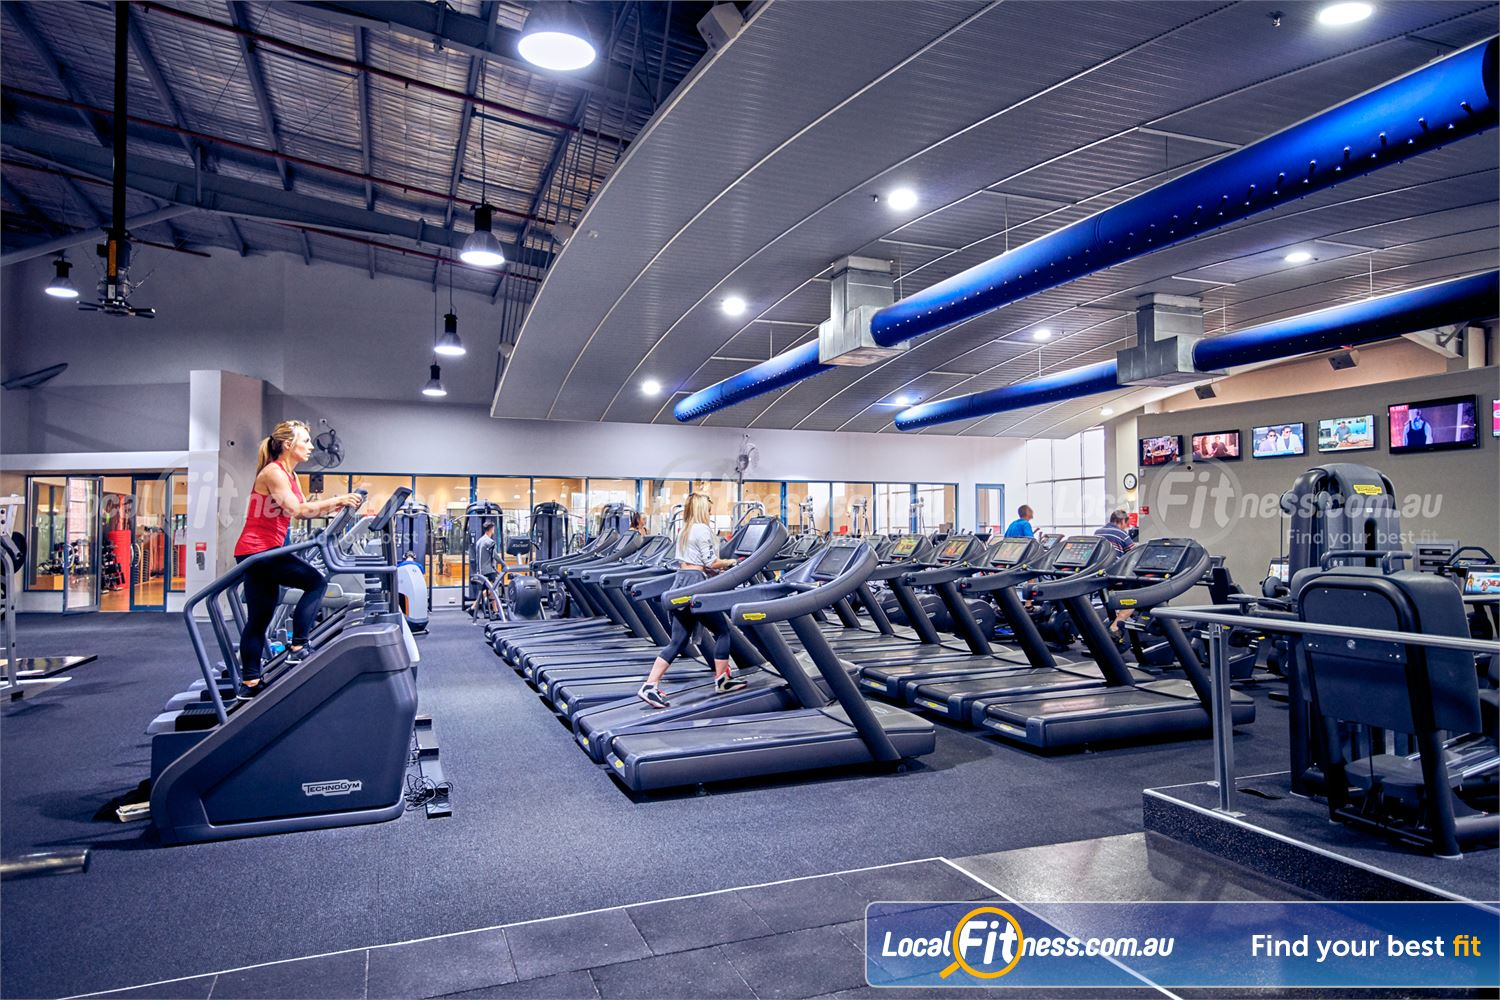 Fitness First Platinum Richmond Our Richond gym includes a state of the art cardio theatre.